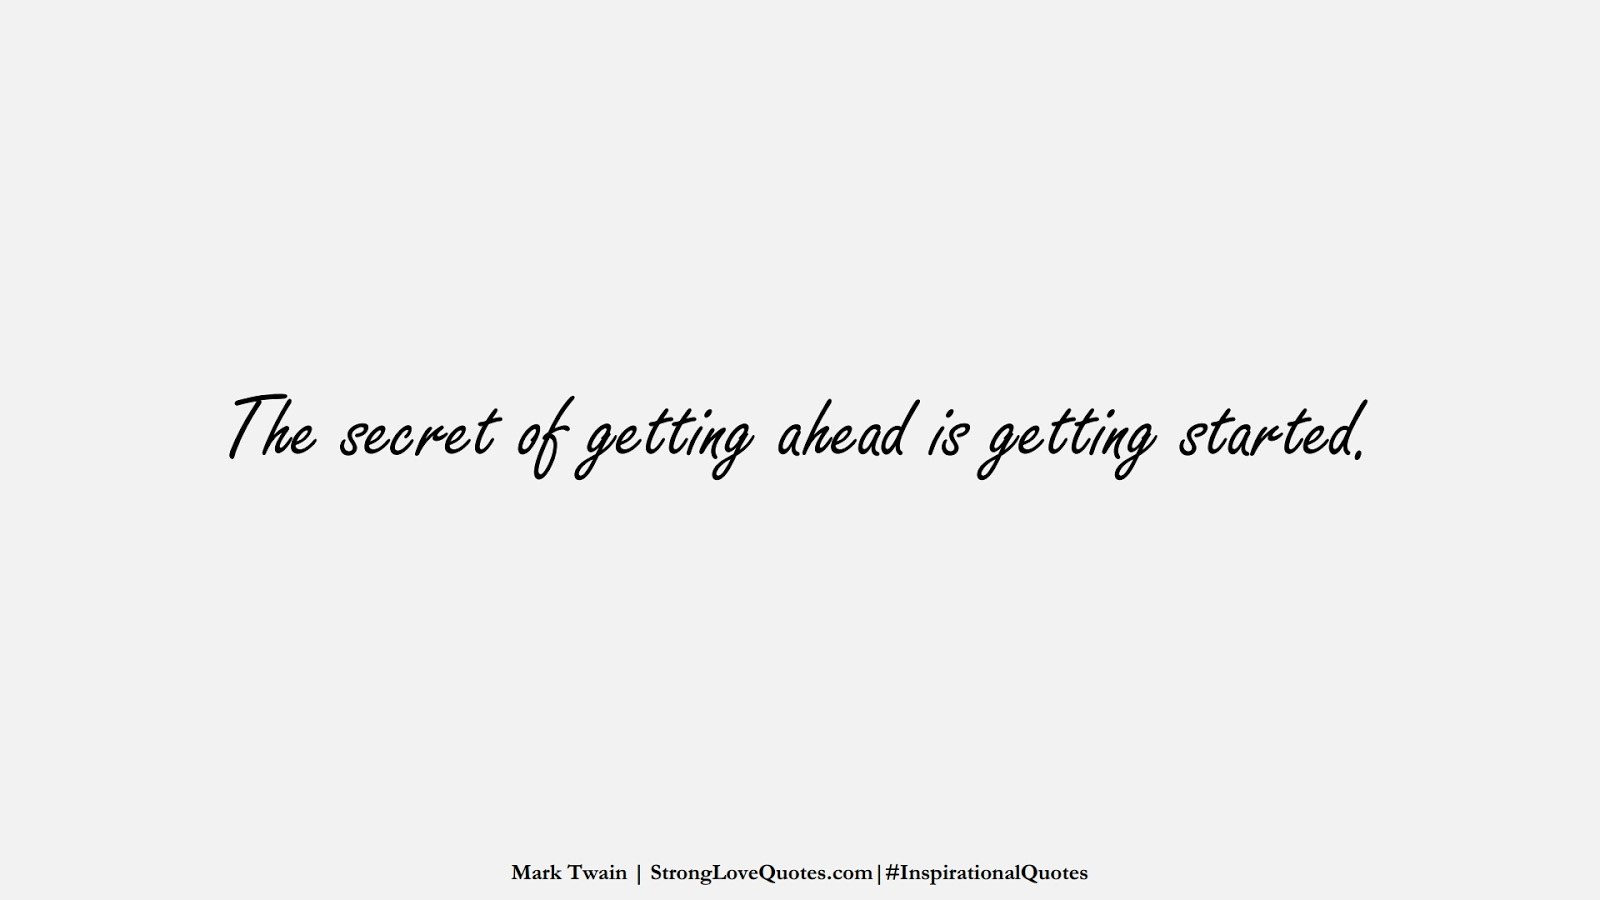 The secret of getting ahead is getting started. (Mark Twain);  #InspirationalQuotes